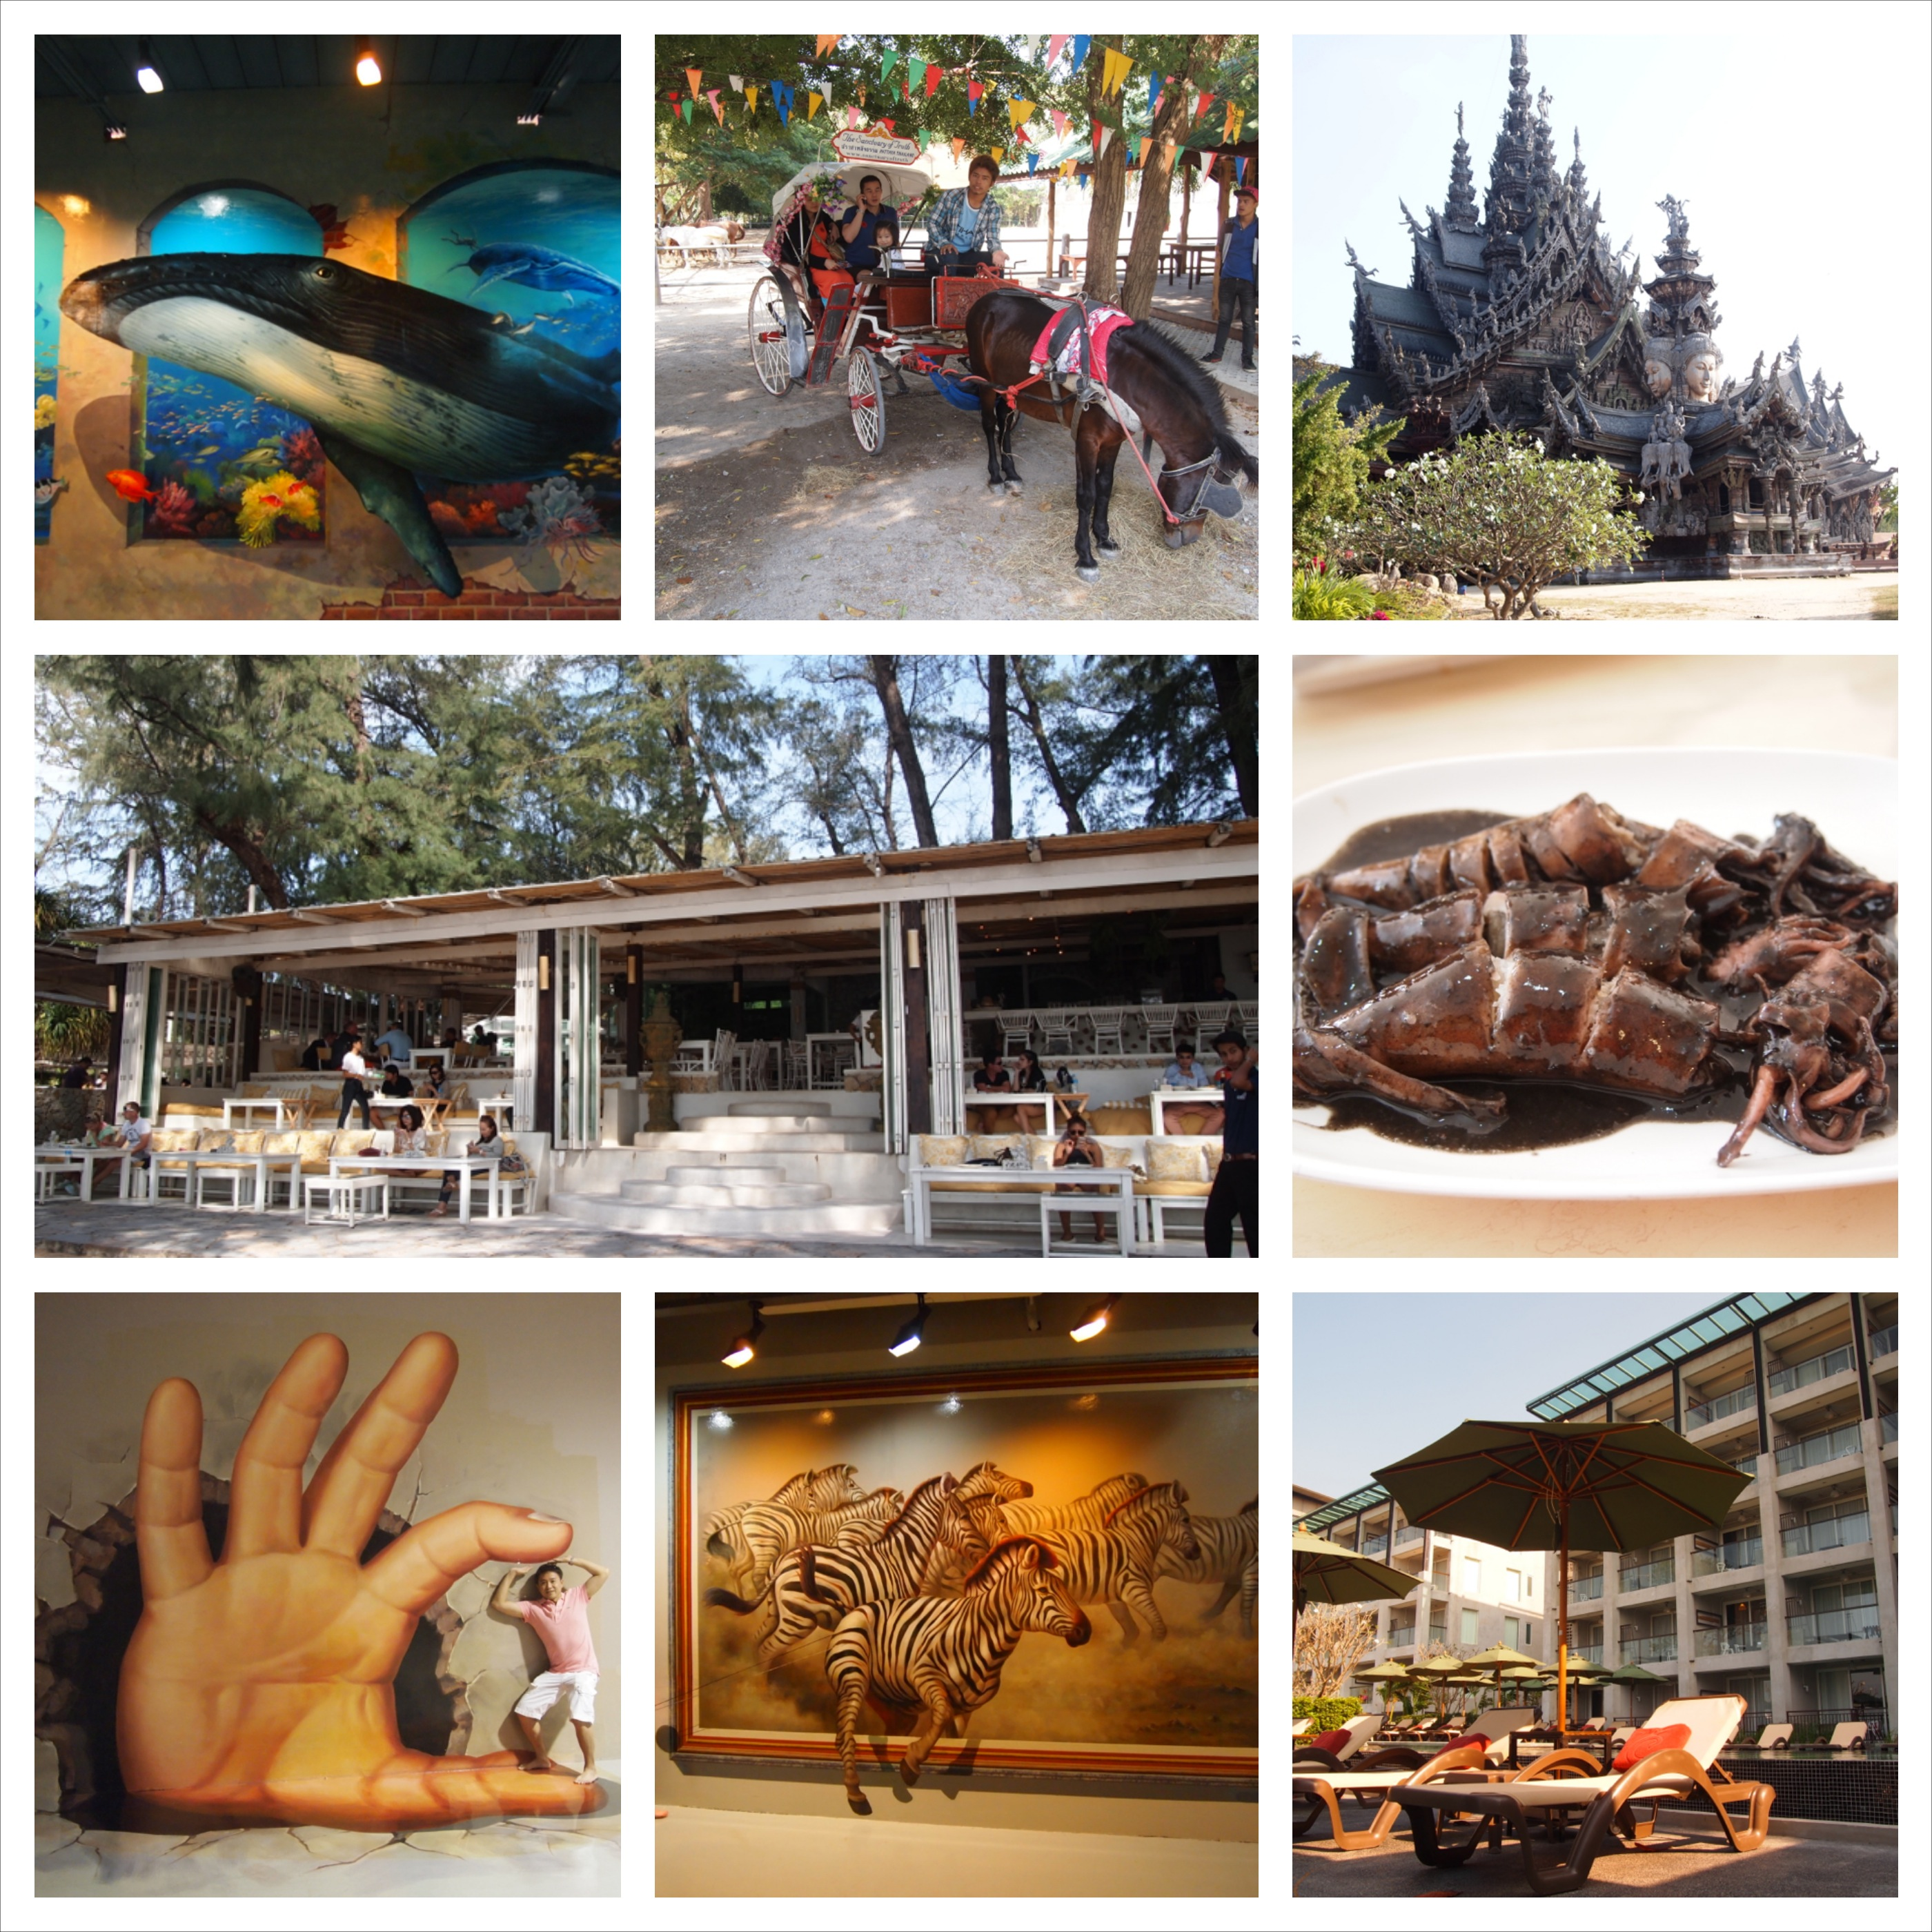 Where to go in Pattaya?